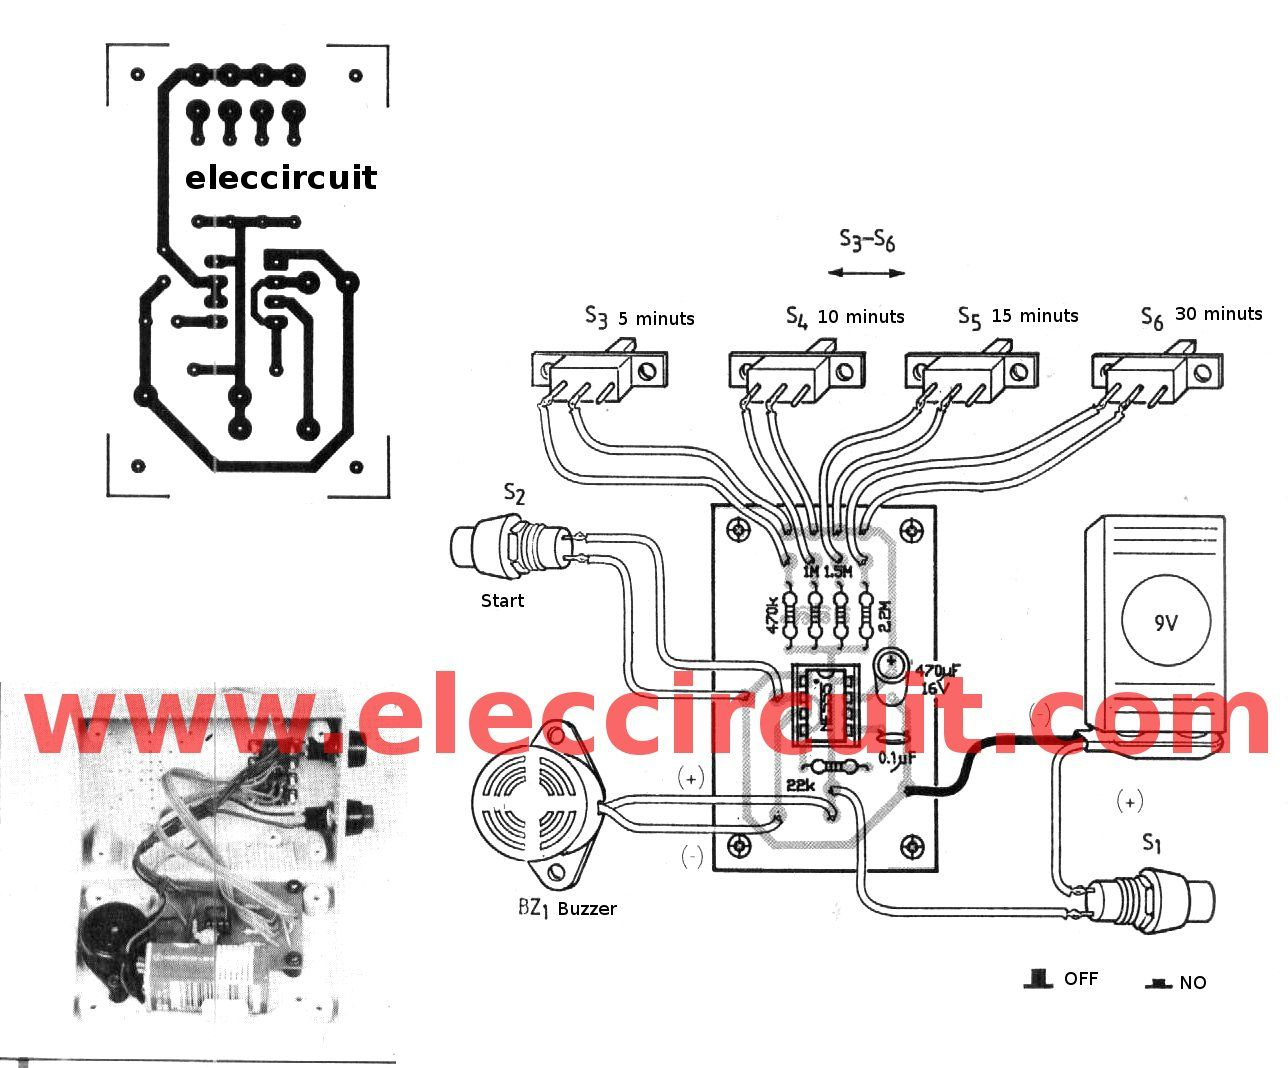 5 30 minuts timer circuit using ic 555